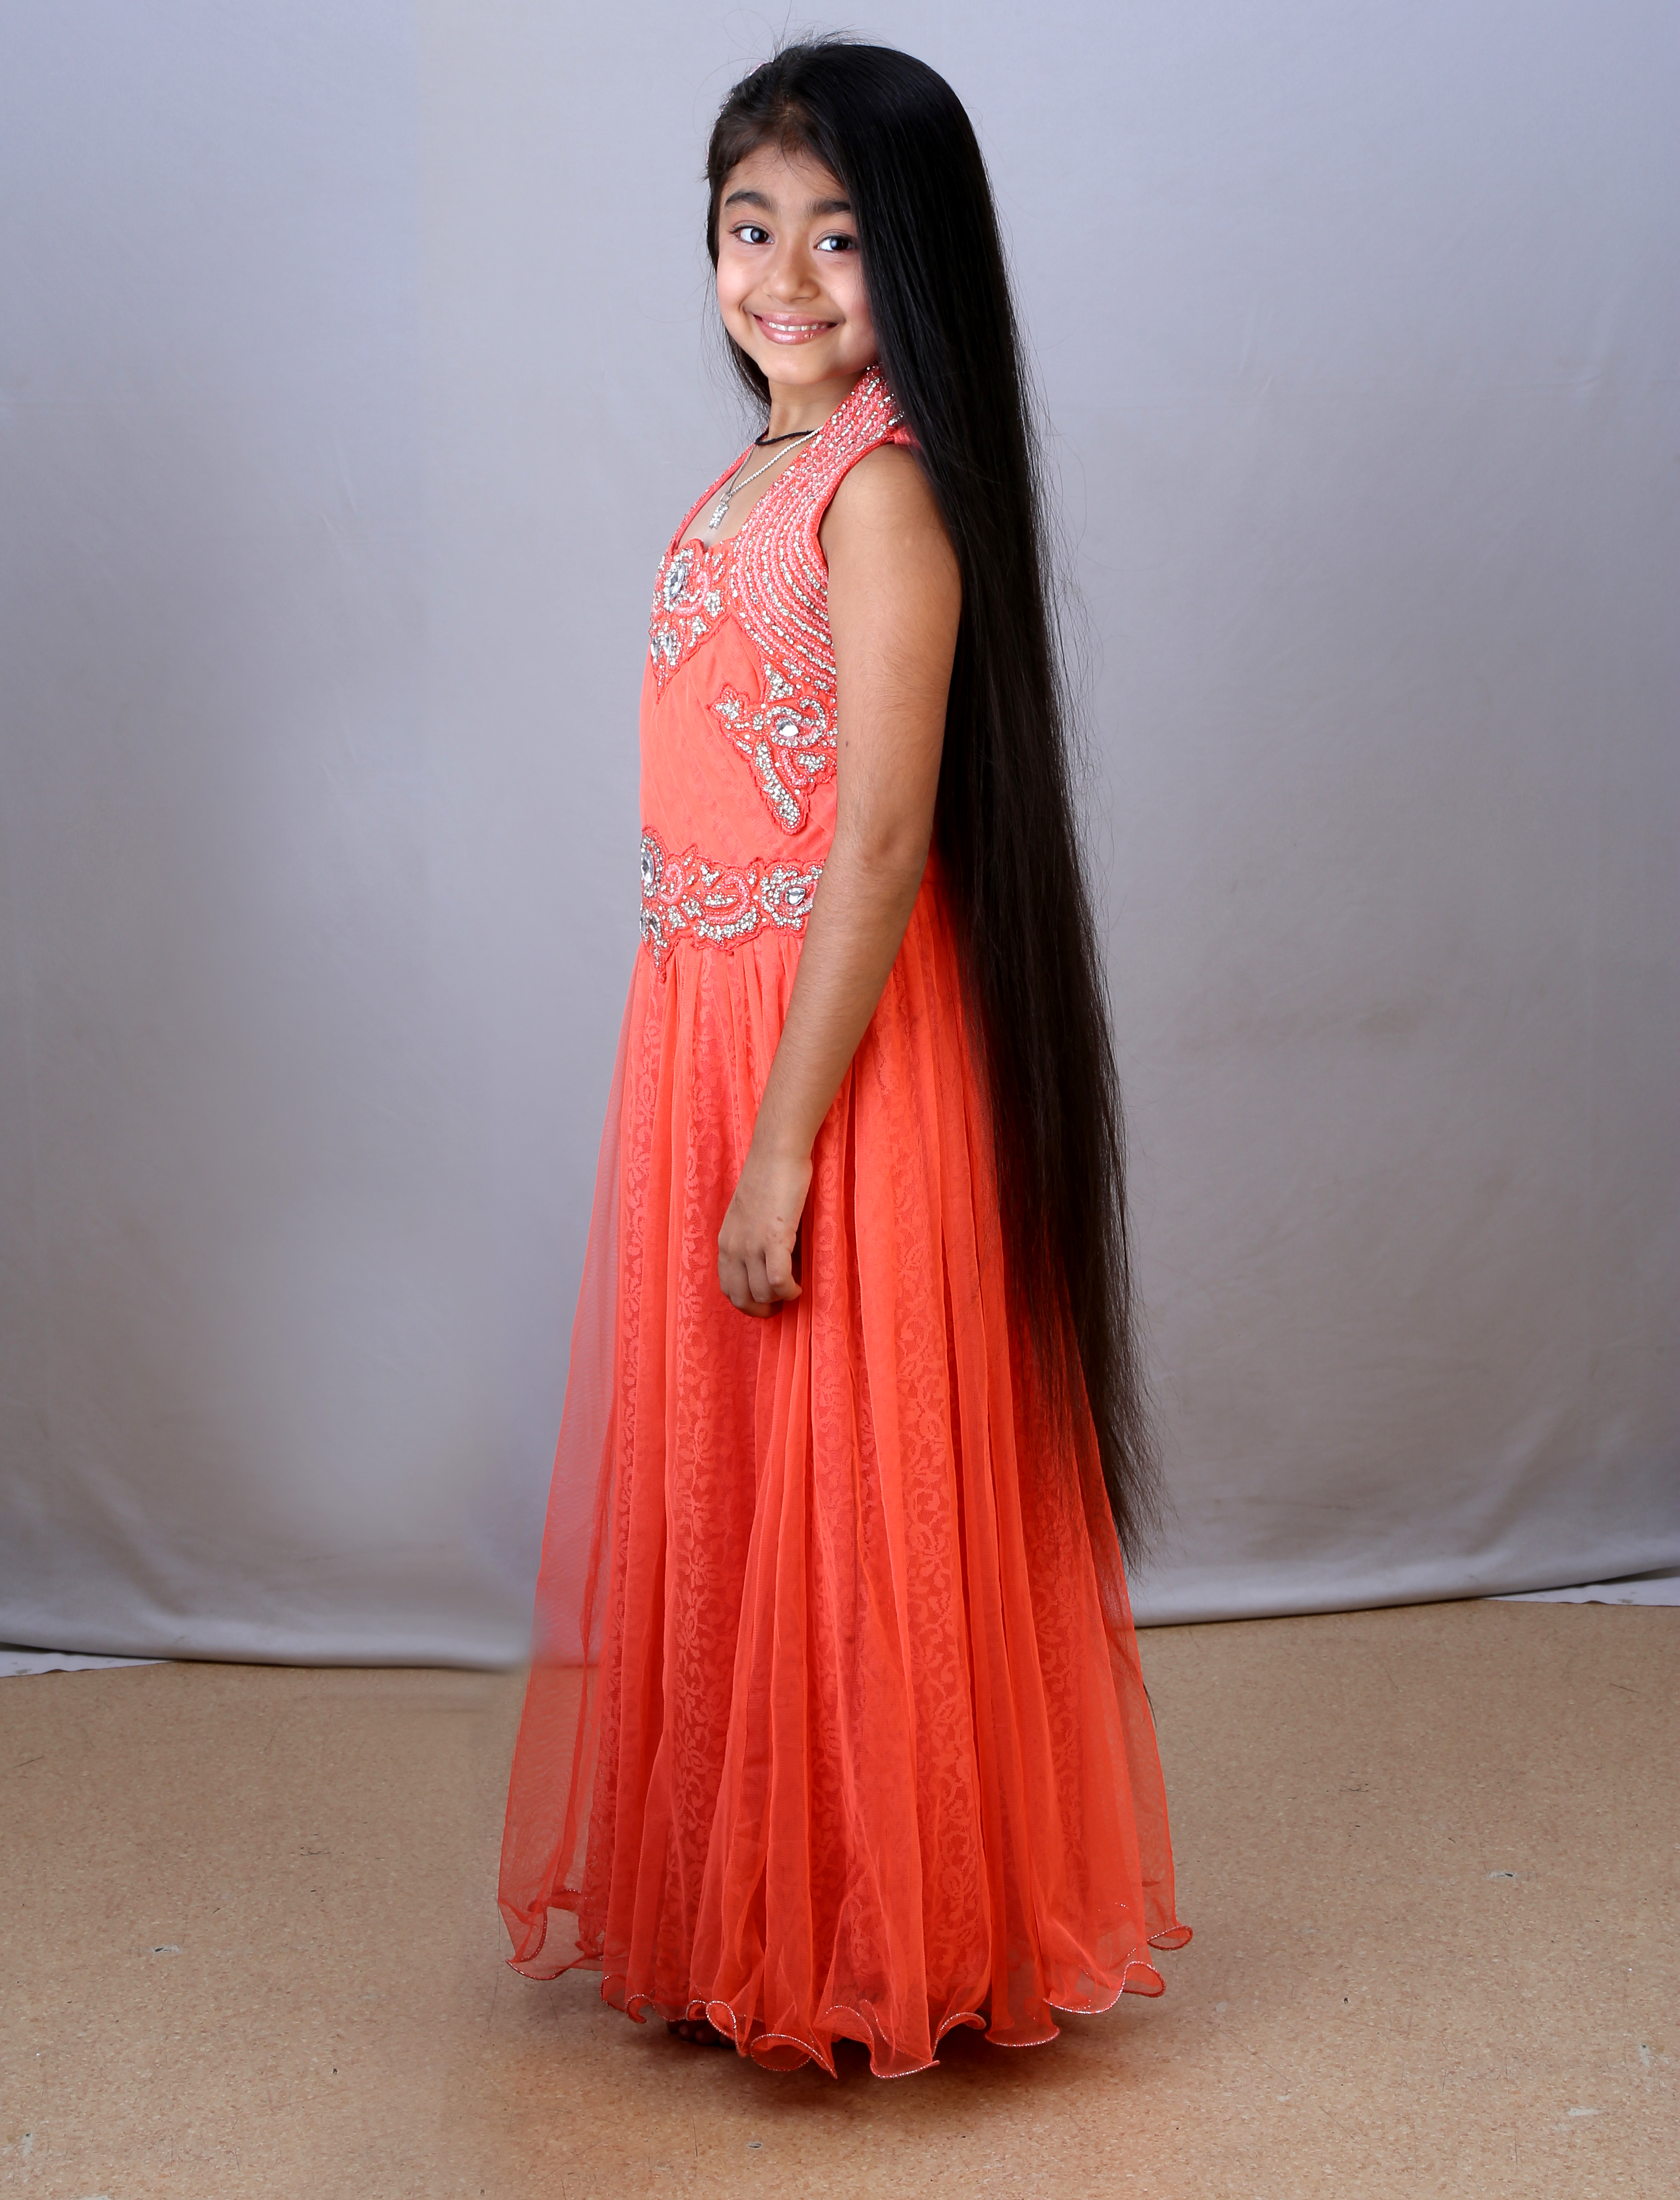 longest hair among children - india book of records